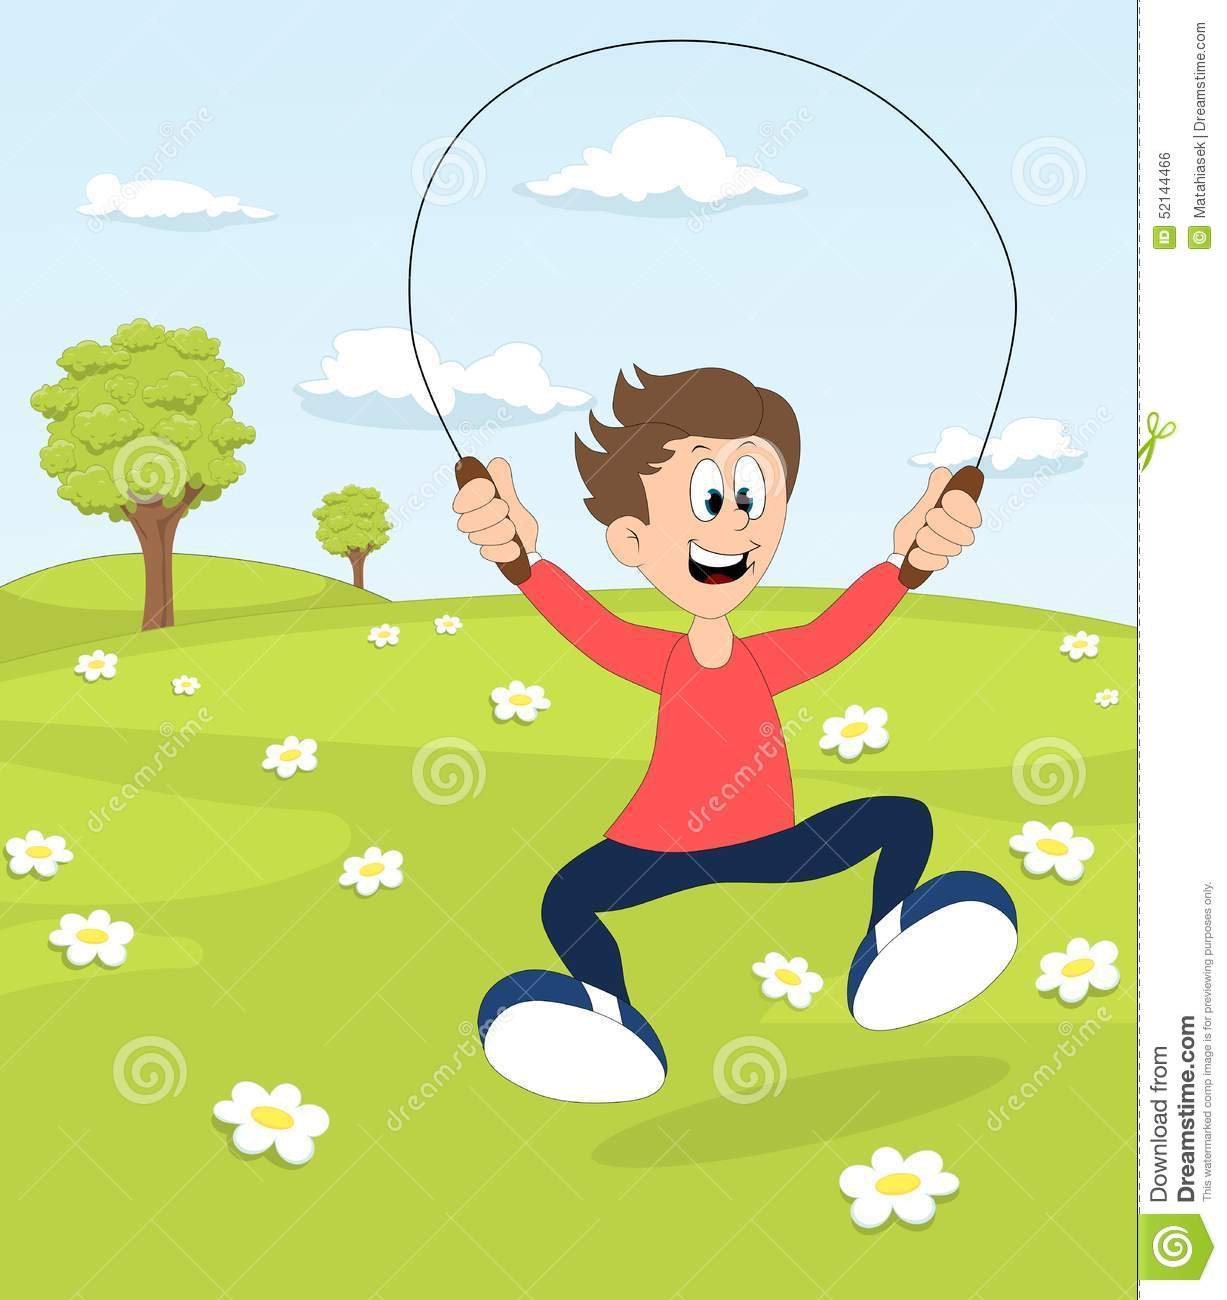 A Boy Playing With The Skipping Rope In A Park Stock Illustration.